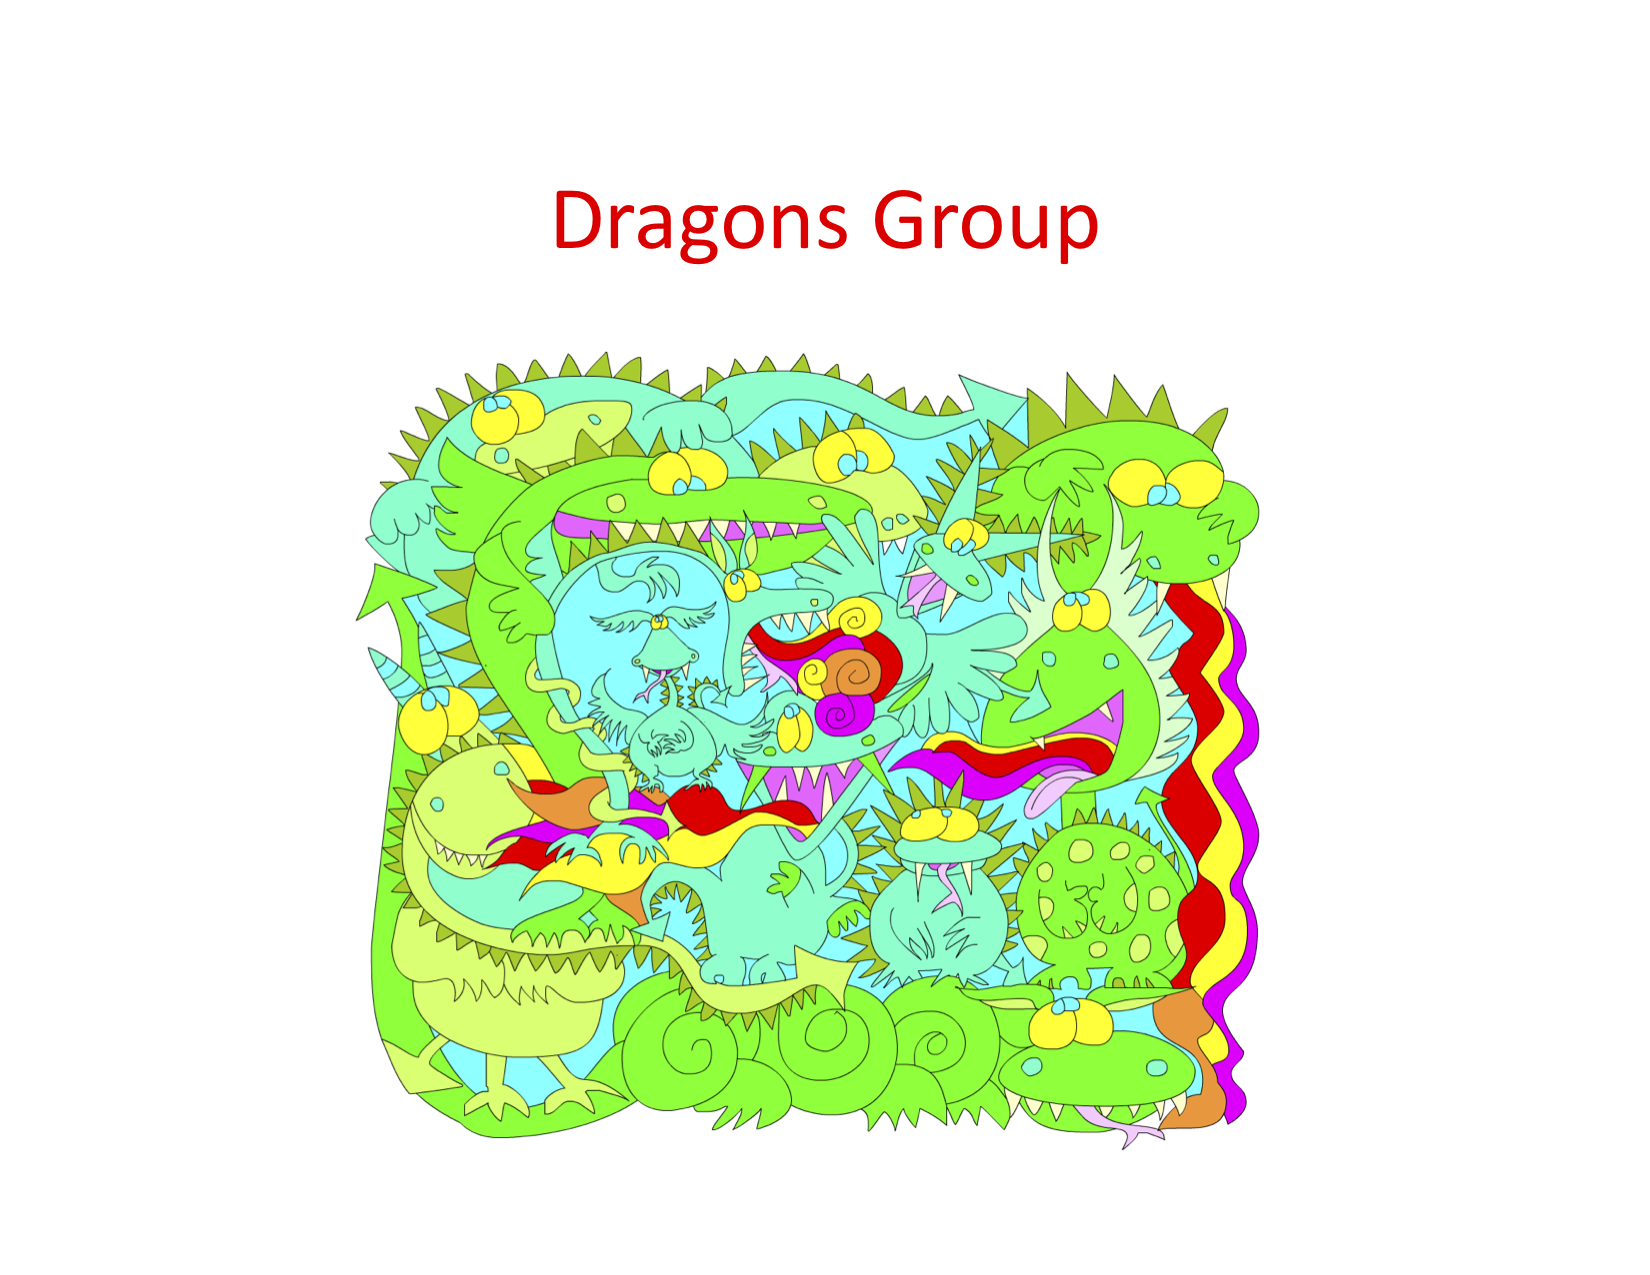 DragonsGroupUSE